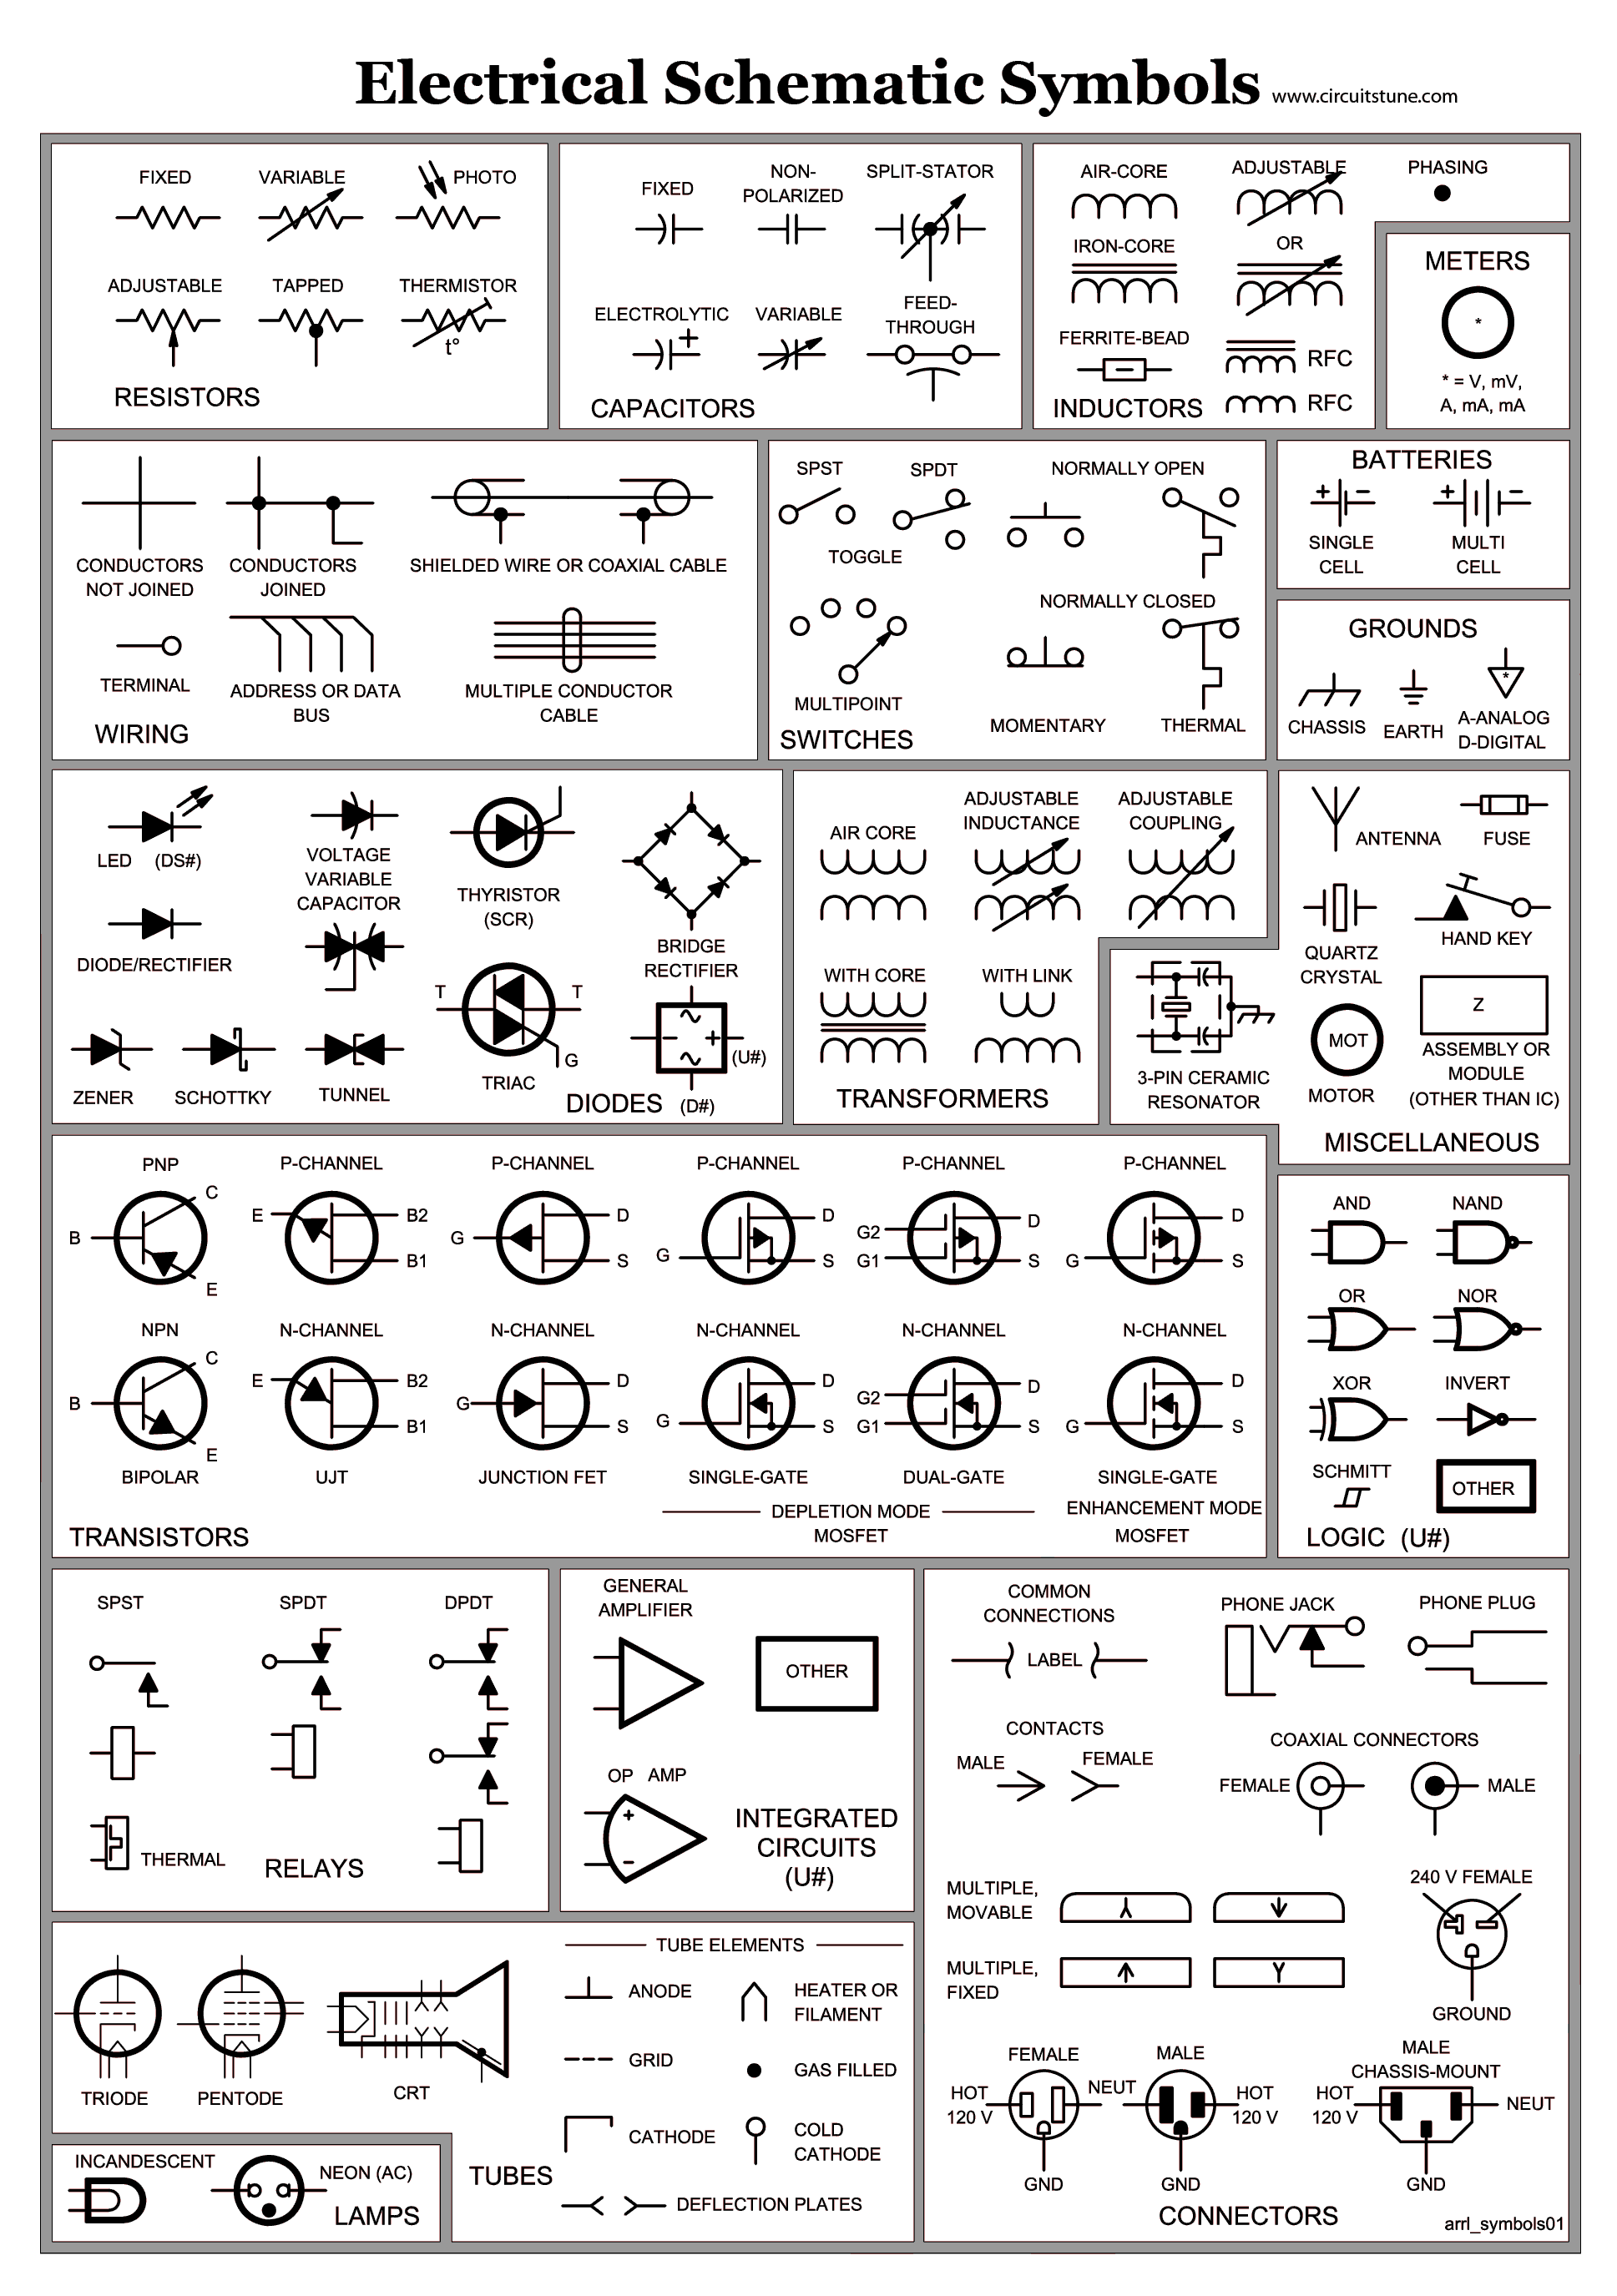 power wiring diagram symbols   automotive wiring diagram symbols    collection symbols used in electrical wiring diagrams pictures